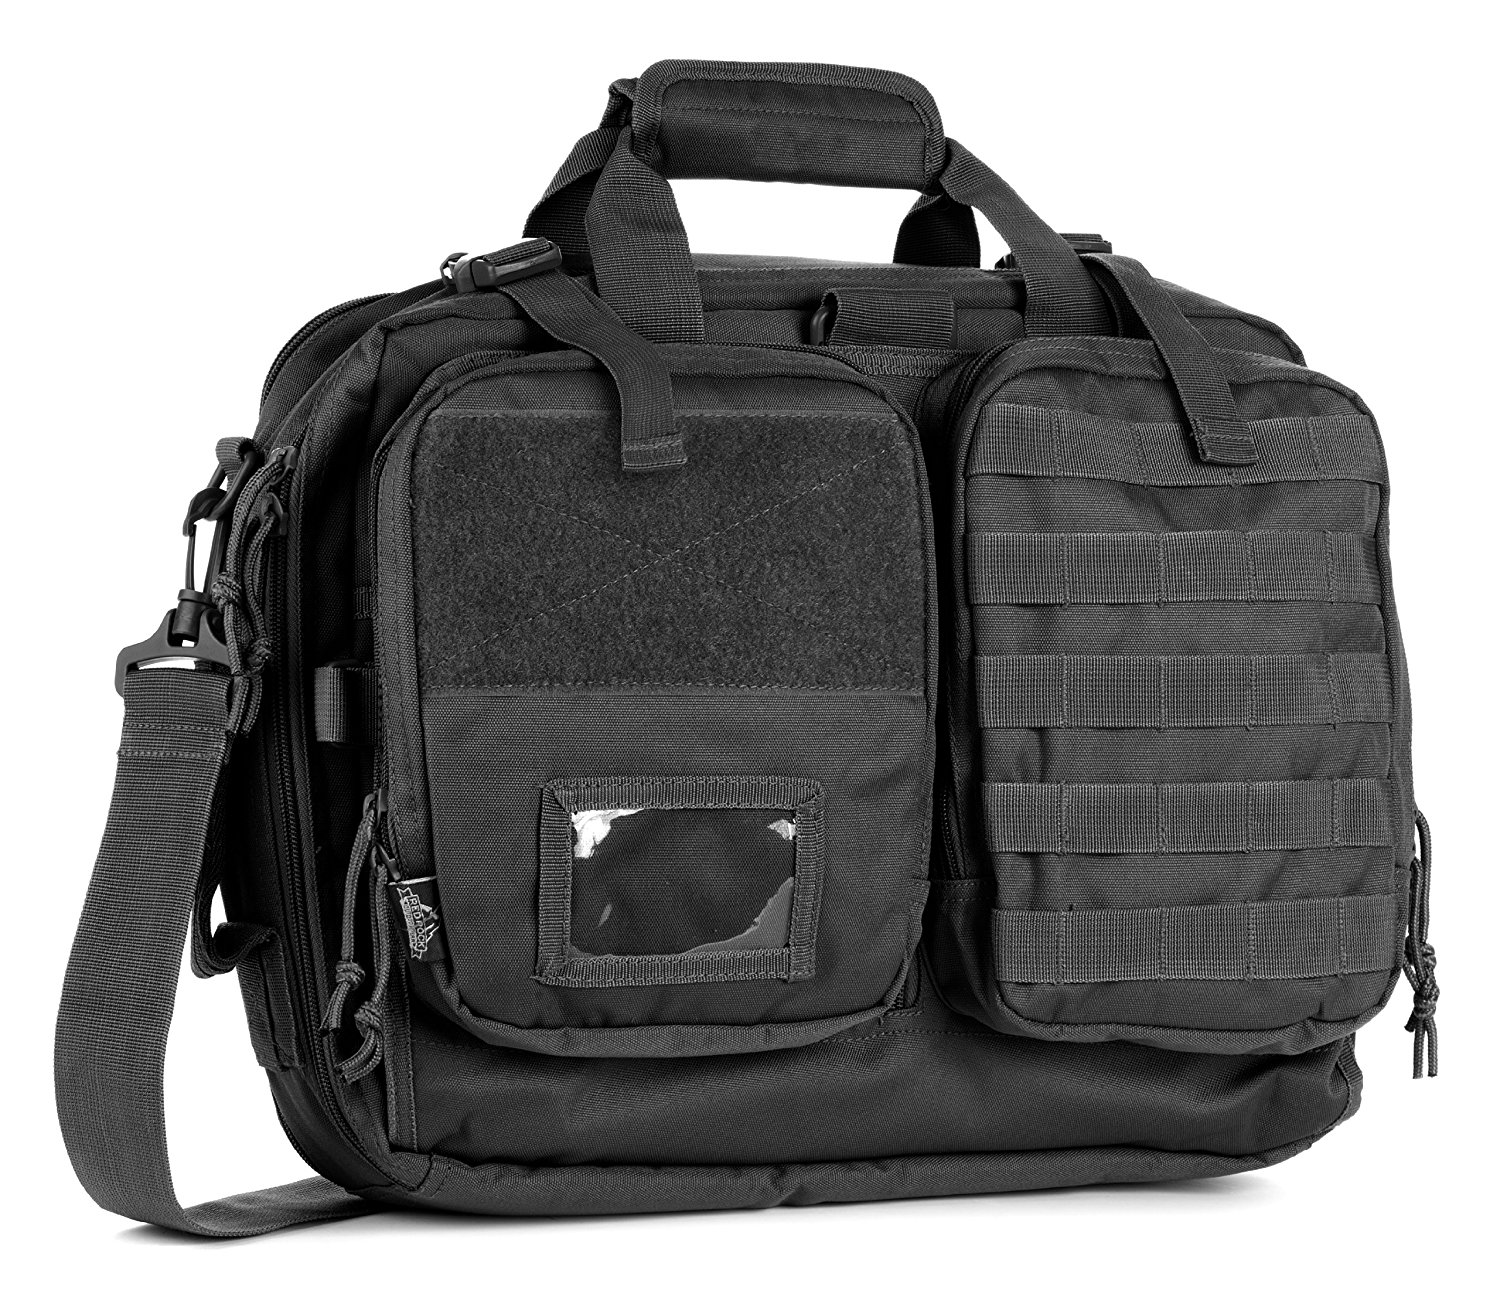 Red Rock Outdoor Navigator Laptop Bag